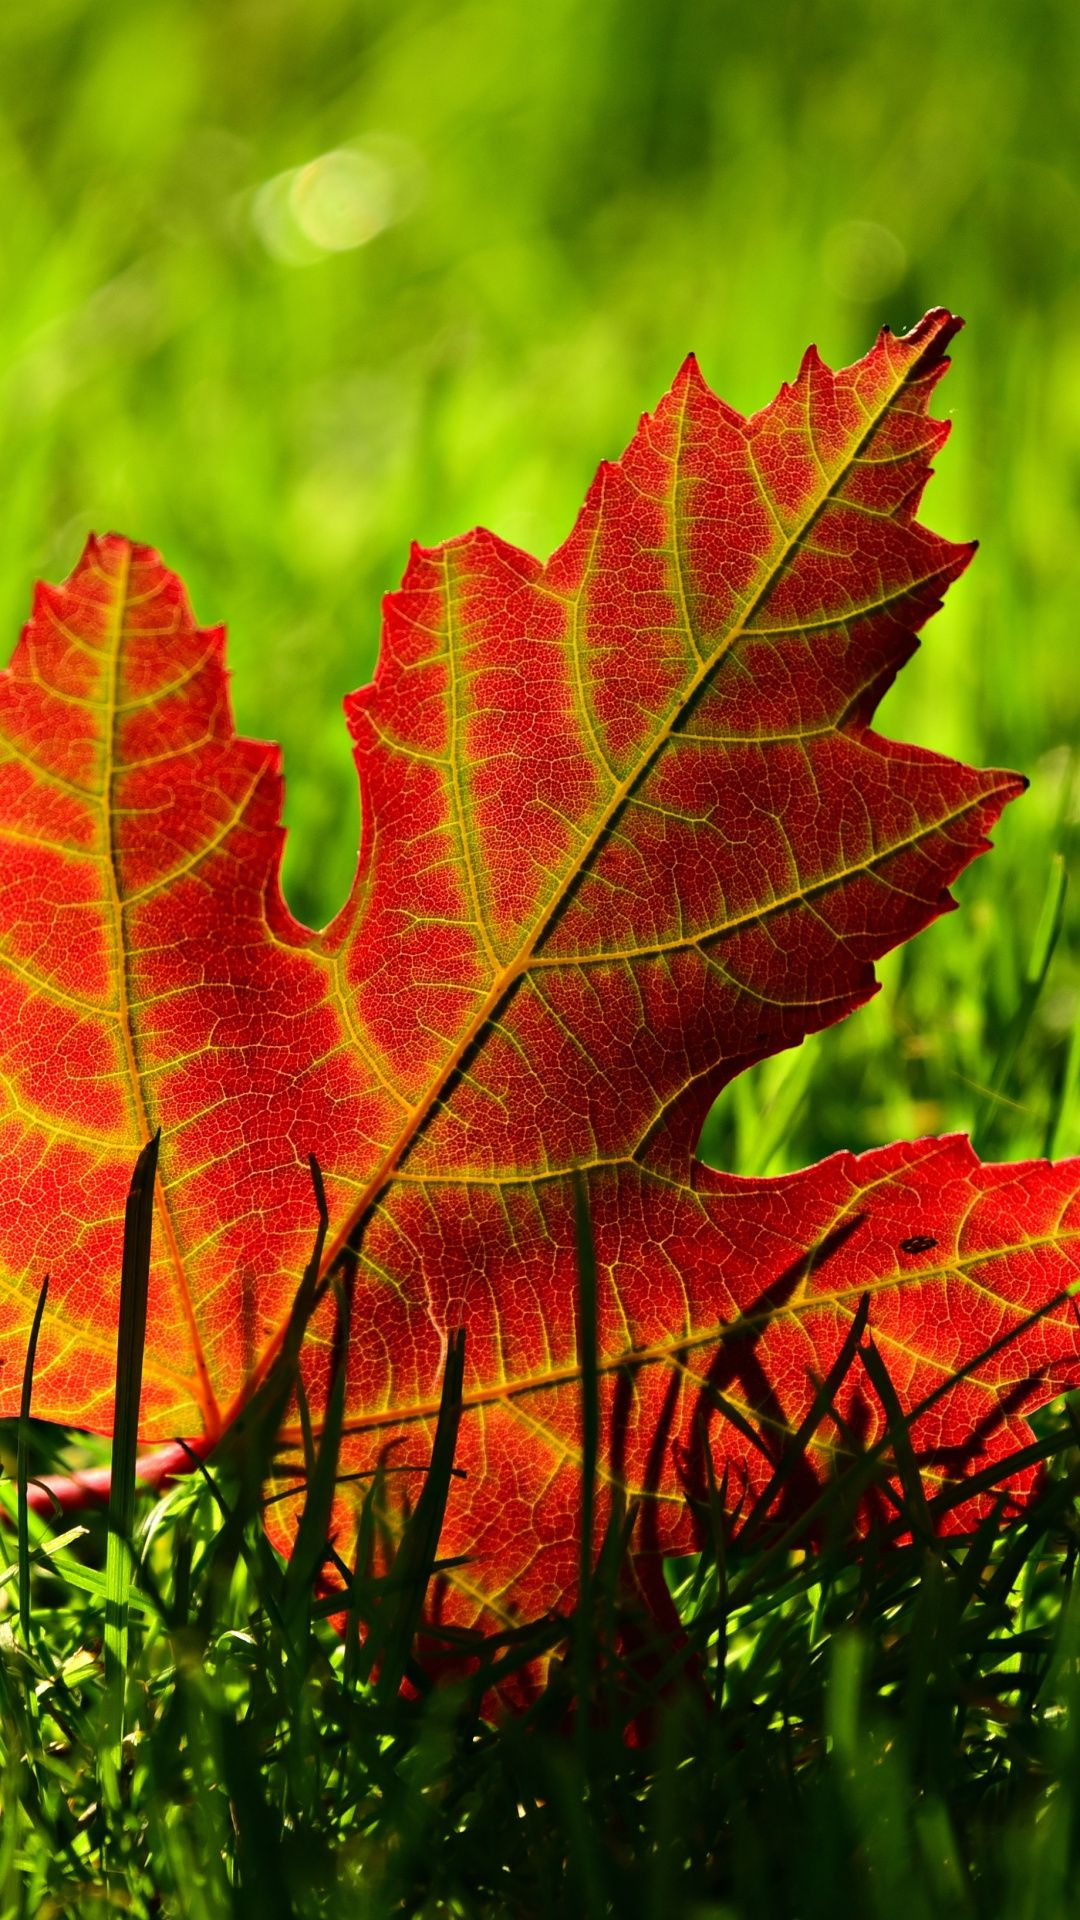 Frosty Fall Leaves Wallpaper Maple Leaf And Grass Close Up 1080x1920 Wallpaper